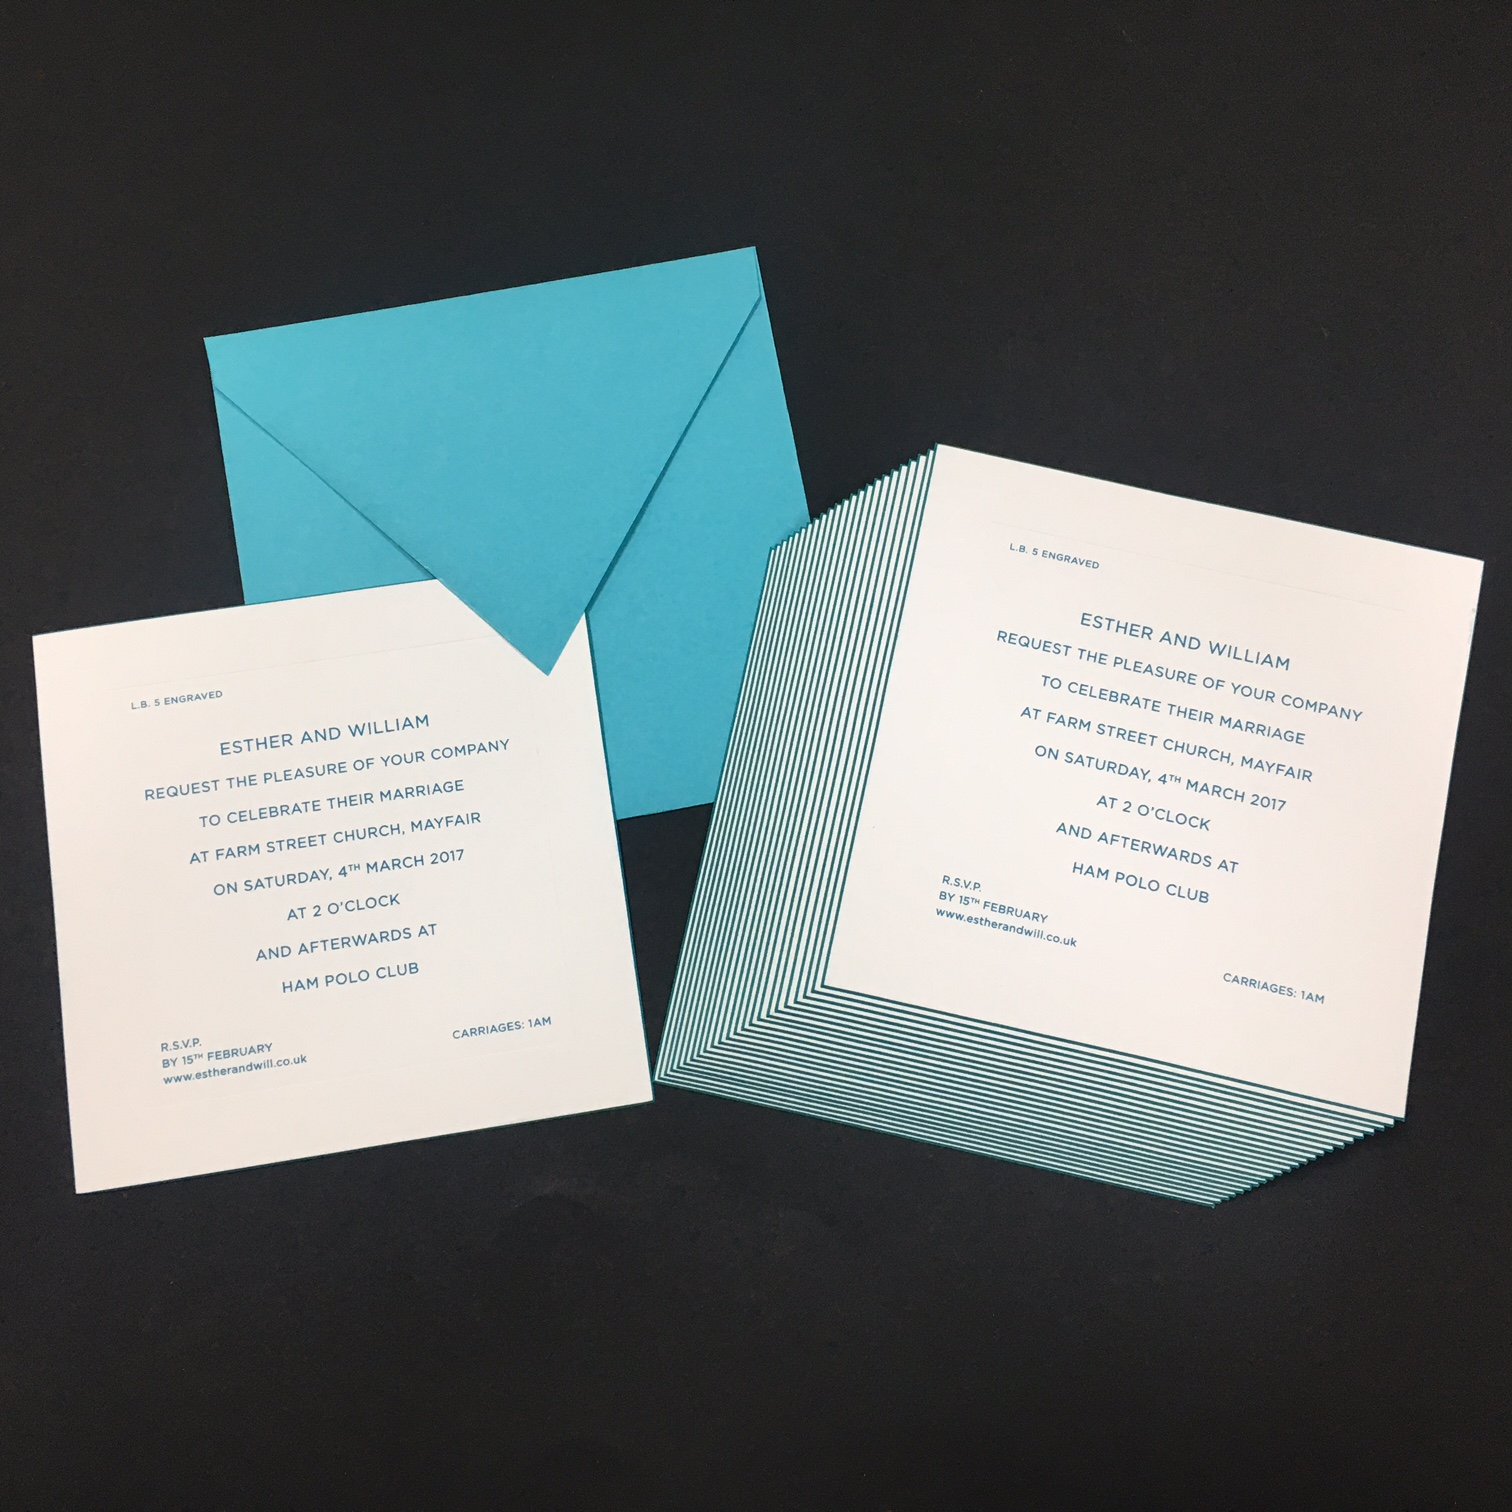 Bespoke Wedding Invitations: Bespoke Wedding Invitation